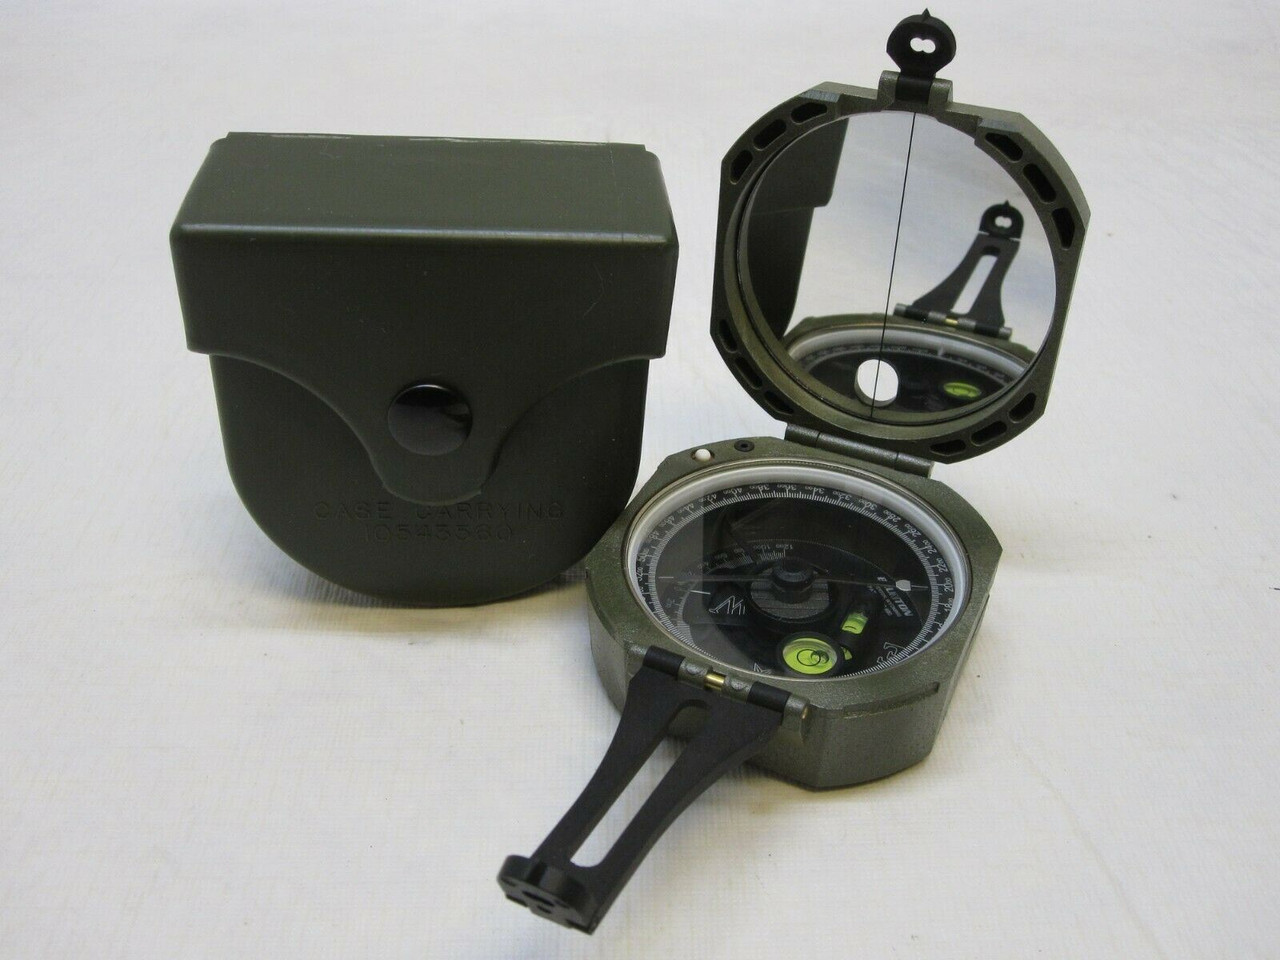 GENUINE MILITARY M2 BRUNTON POCKET TRANSIT COMPASS ARTILLERY 1290-00-930-4260